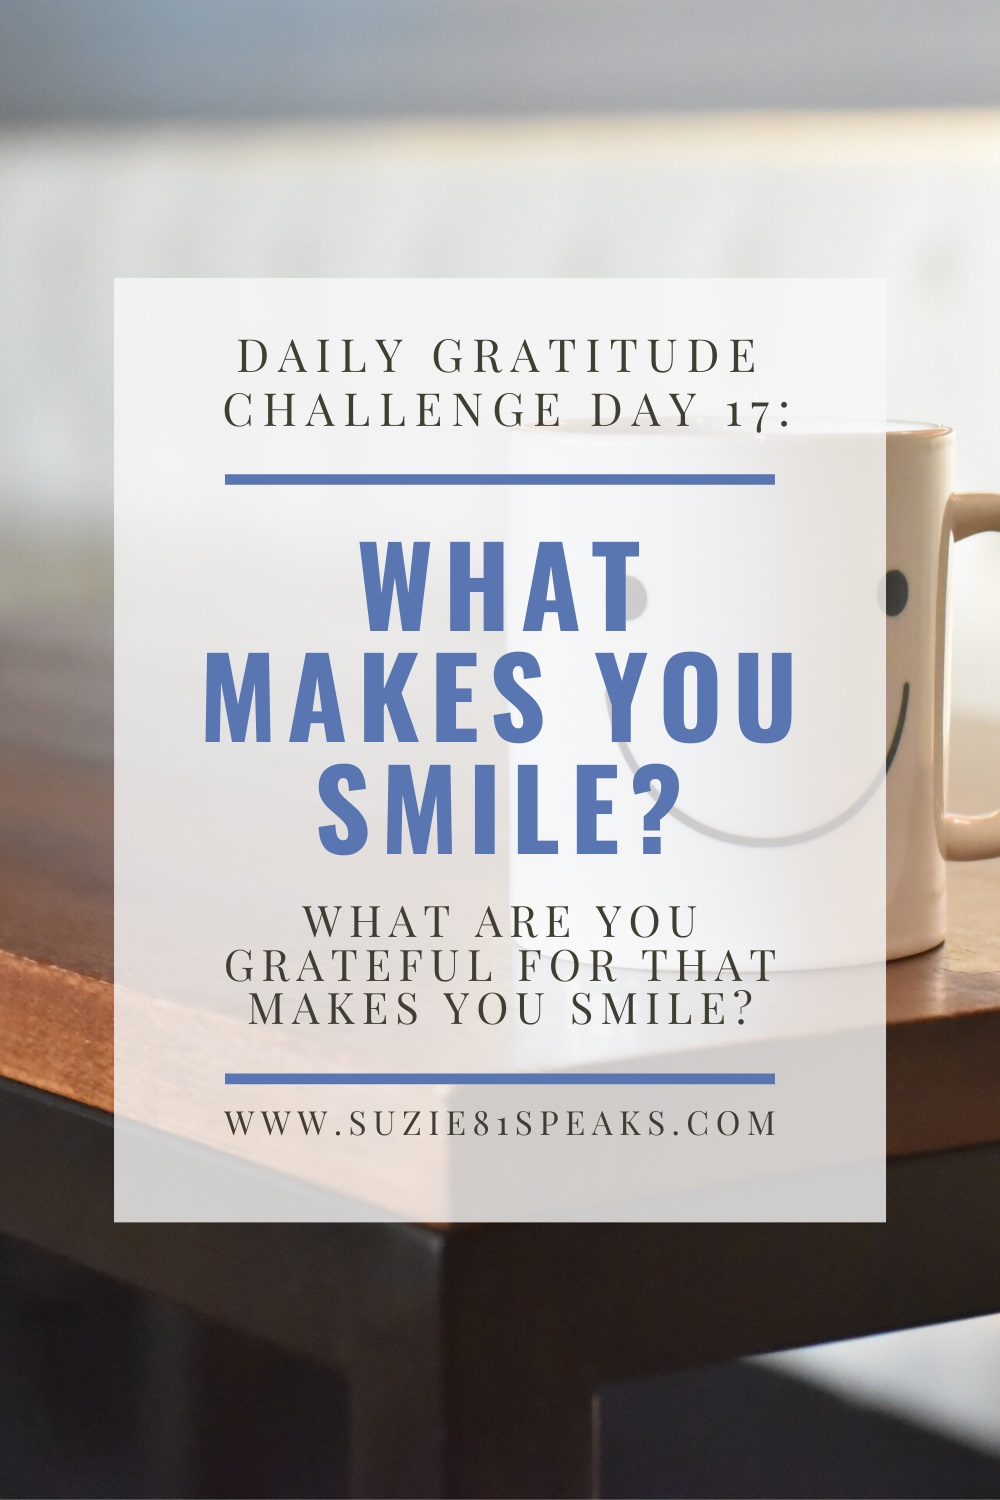 Daily Gratitude Challenge Day 17: Things That Make You Smile